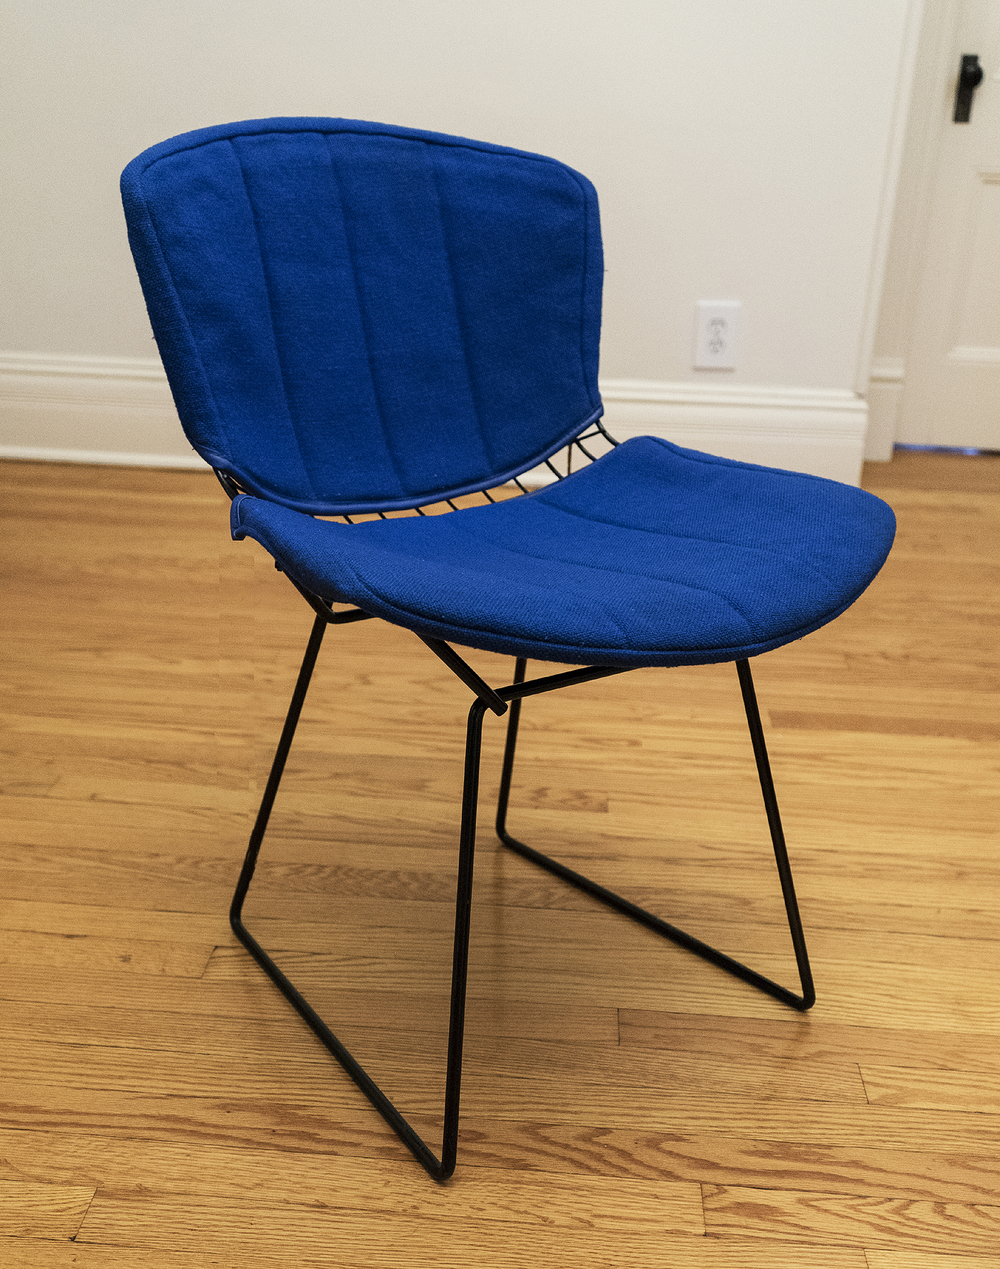 Original Harry Bertoia/Knoll Side Chair, with Full Seat Pad